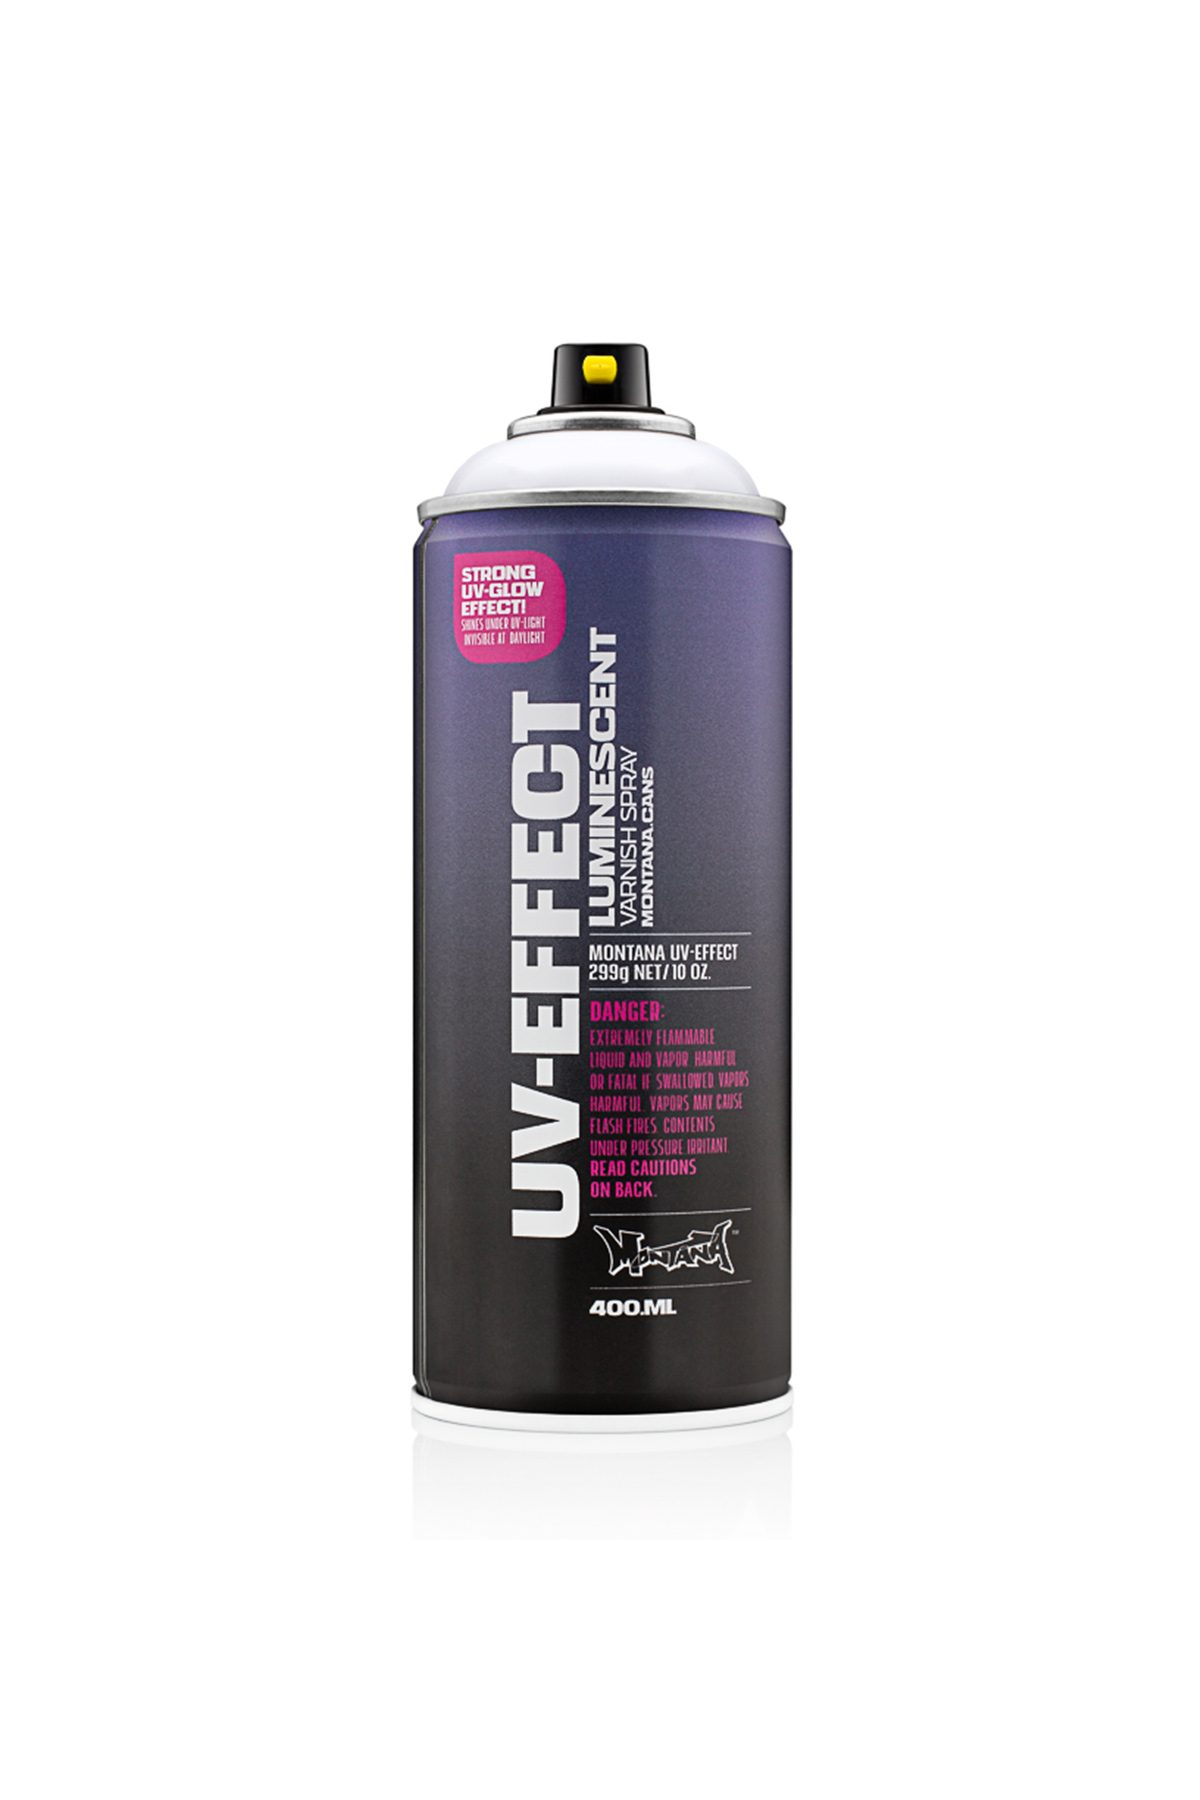 Montana UV-EFFECT Transparent 400ml